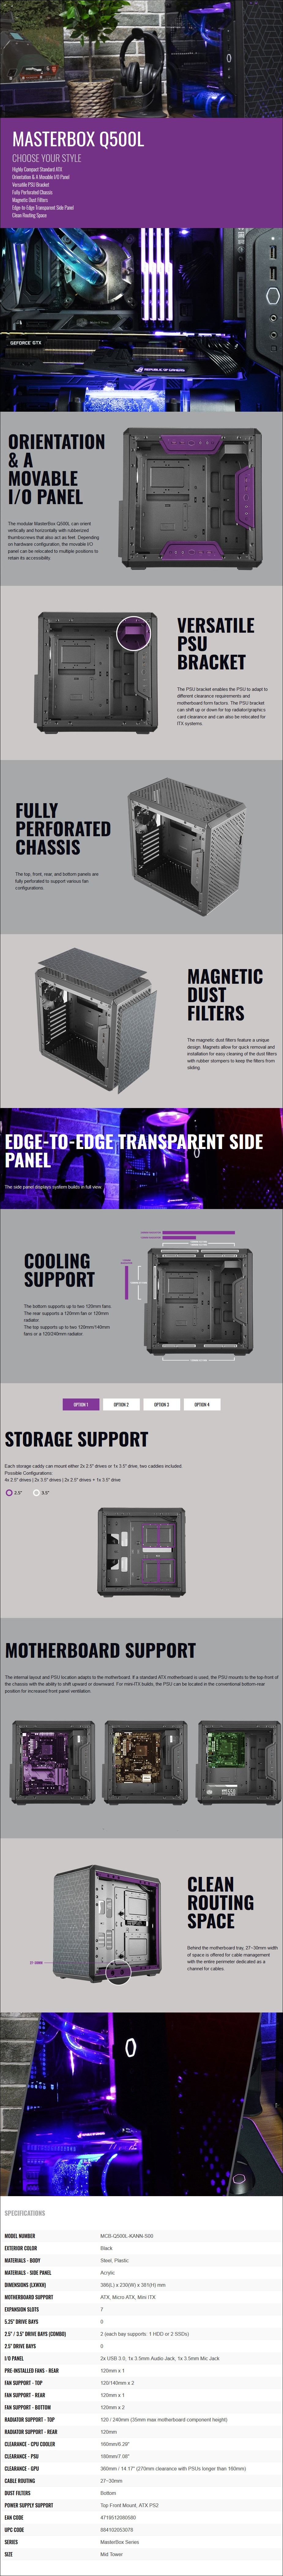 Cooler Master MasterBox Q500L Mid-Tower ATX Case - Overview 1